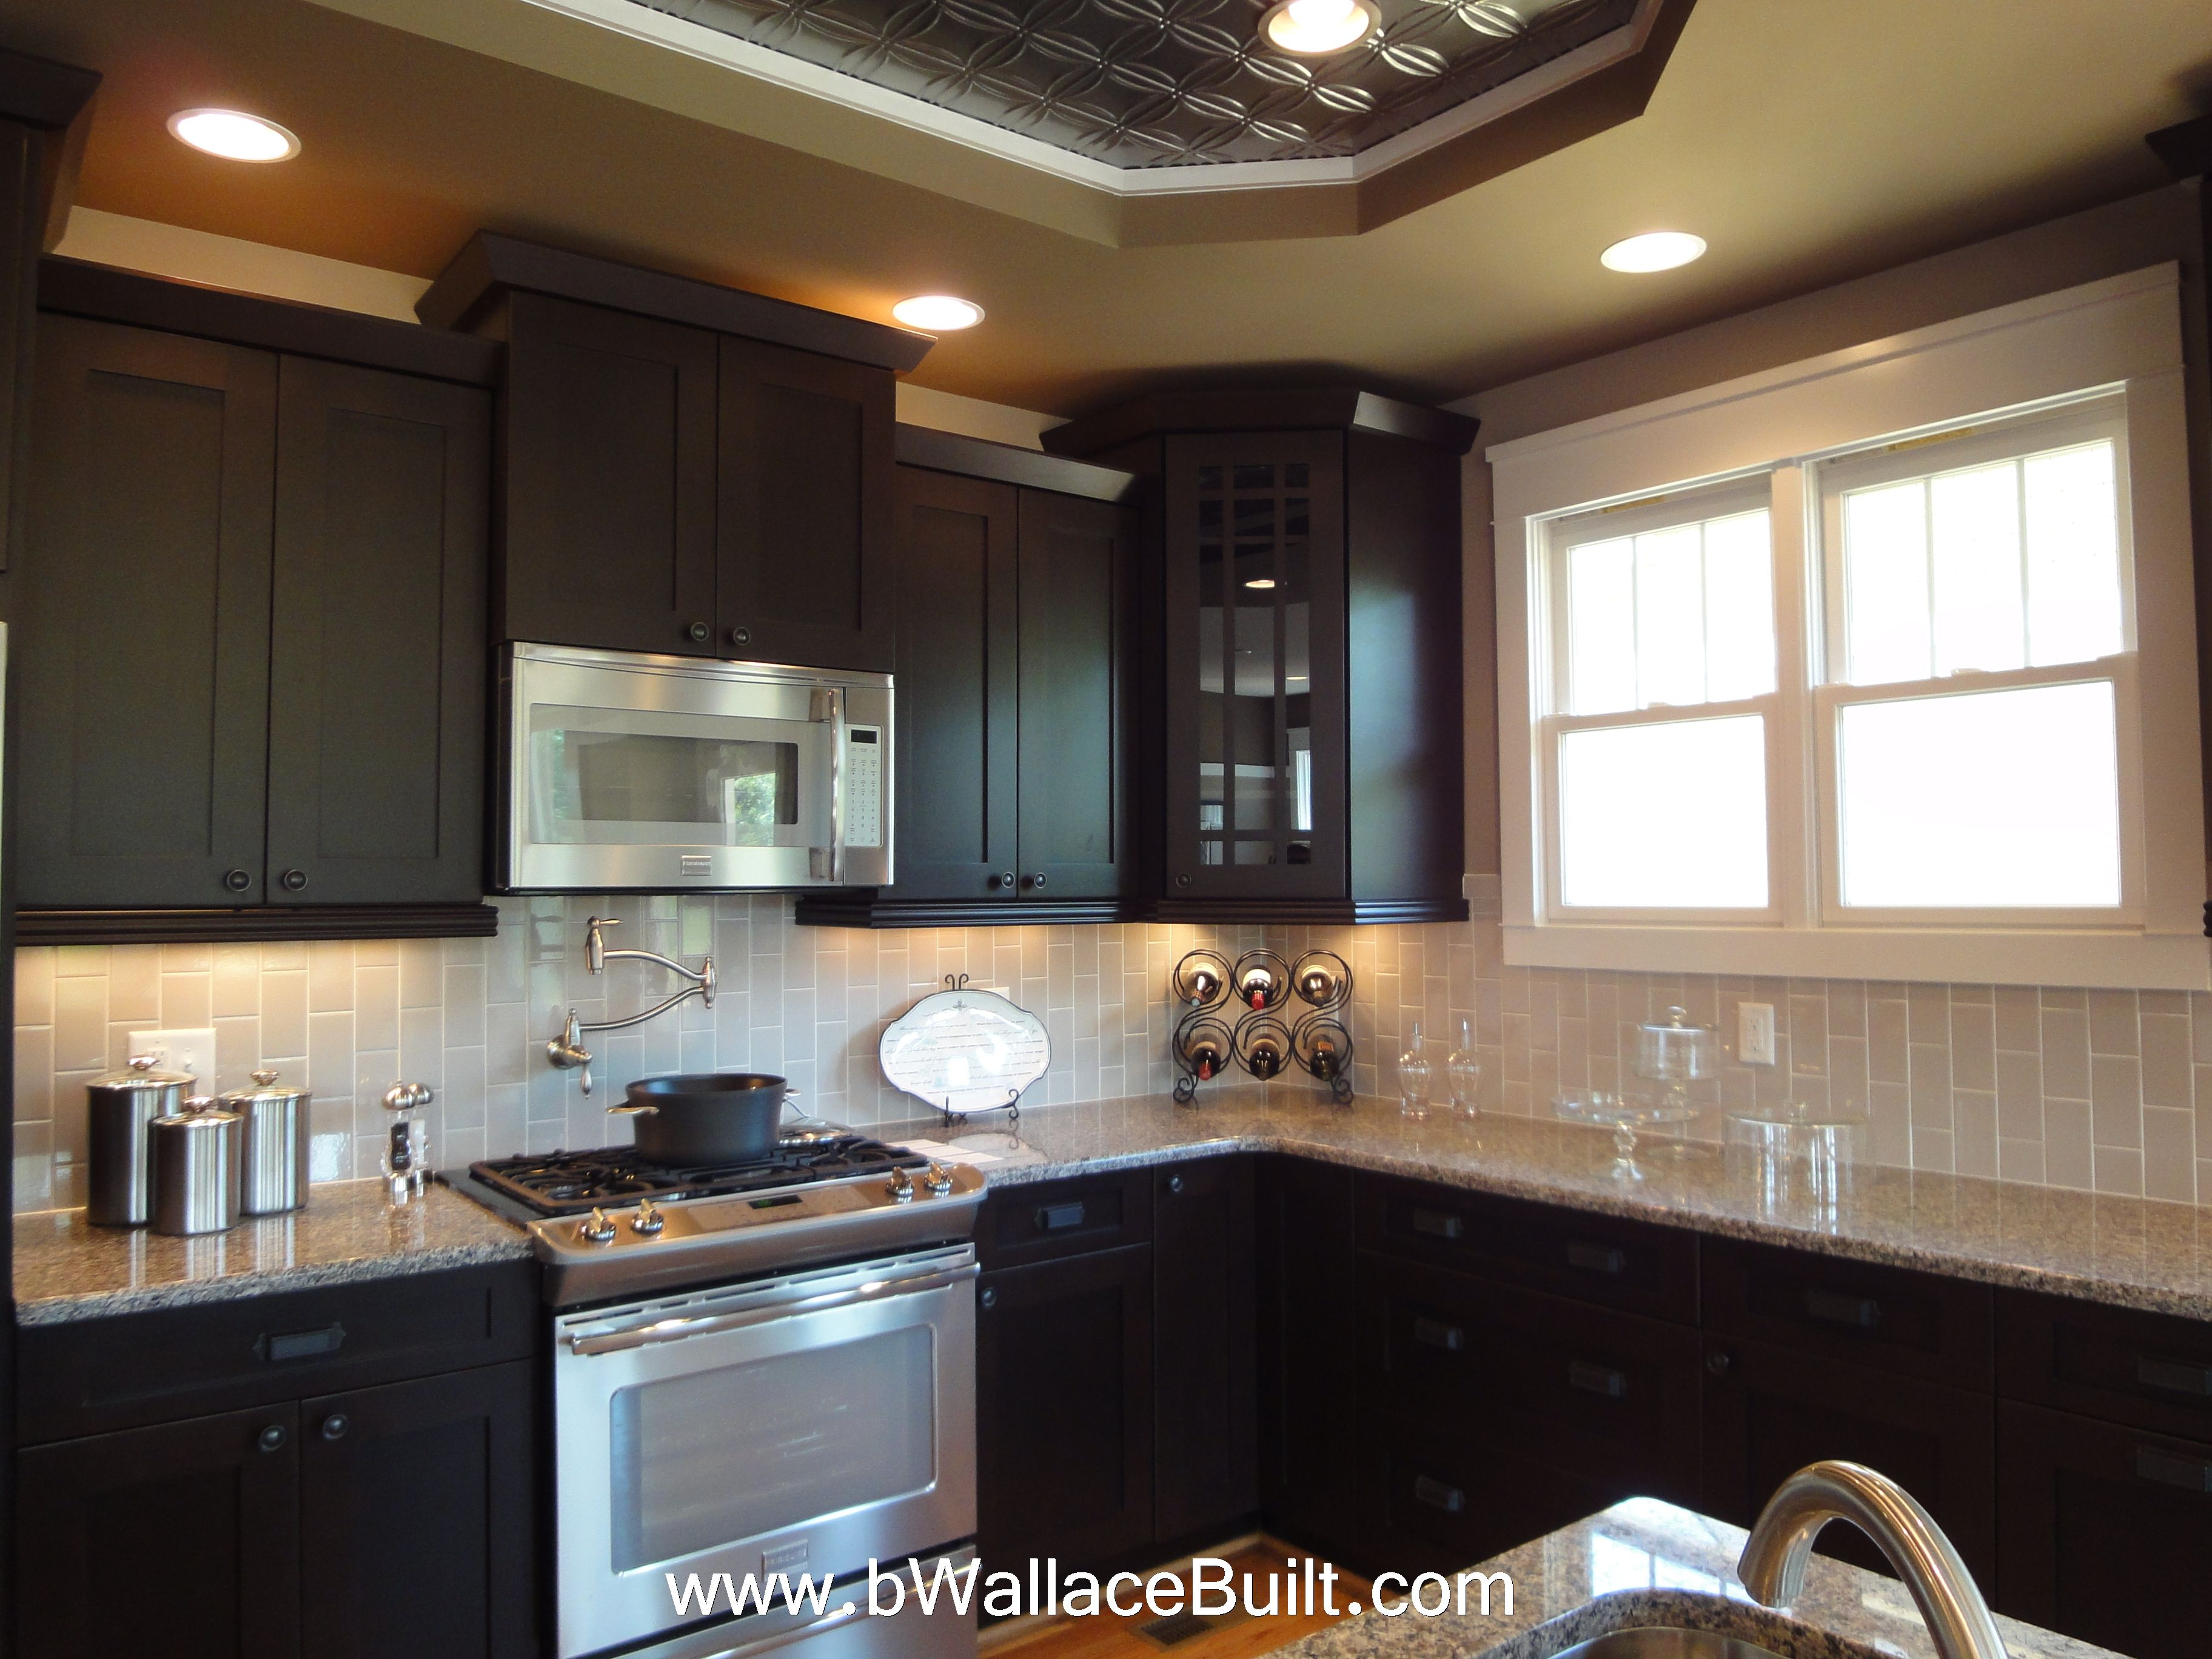 Backsplash Colors For Dark Cabinets Dark Cabinets Light Granite Countertops And Grey Vertical